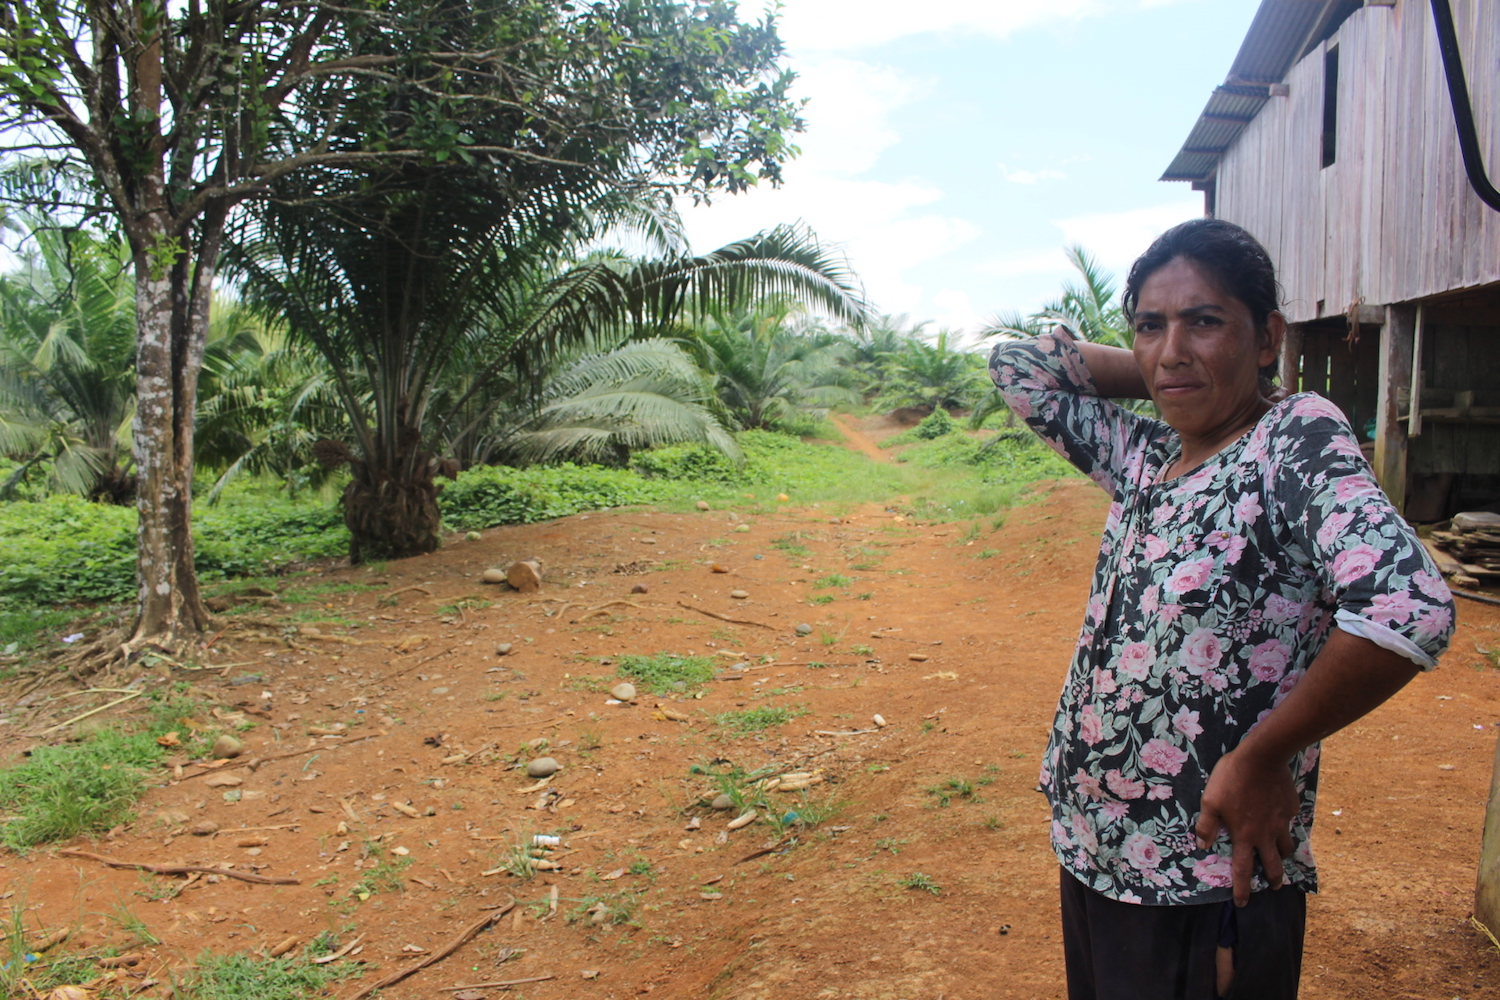 Carmen Bricio shows her oil palm crops. She began cultivating oil palm with her husband five years ago, but it has not gone well. Photo by Daniela Aguilar